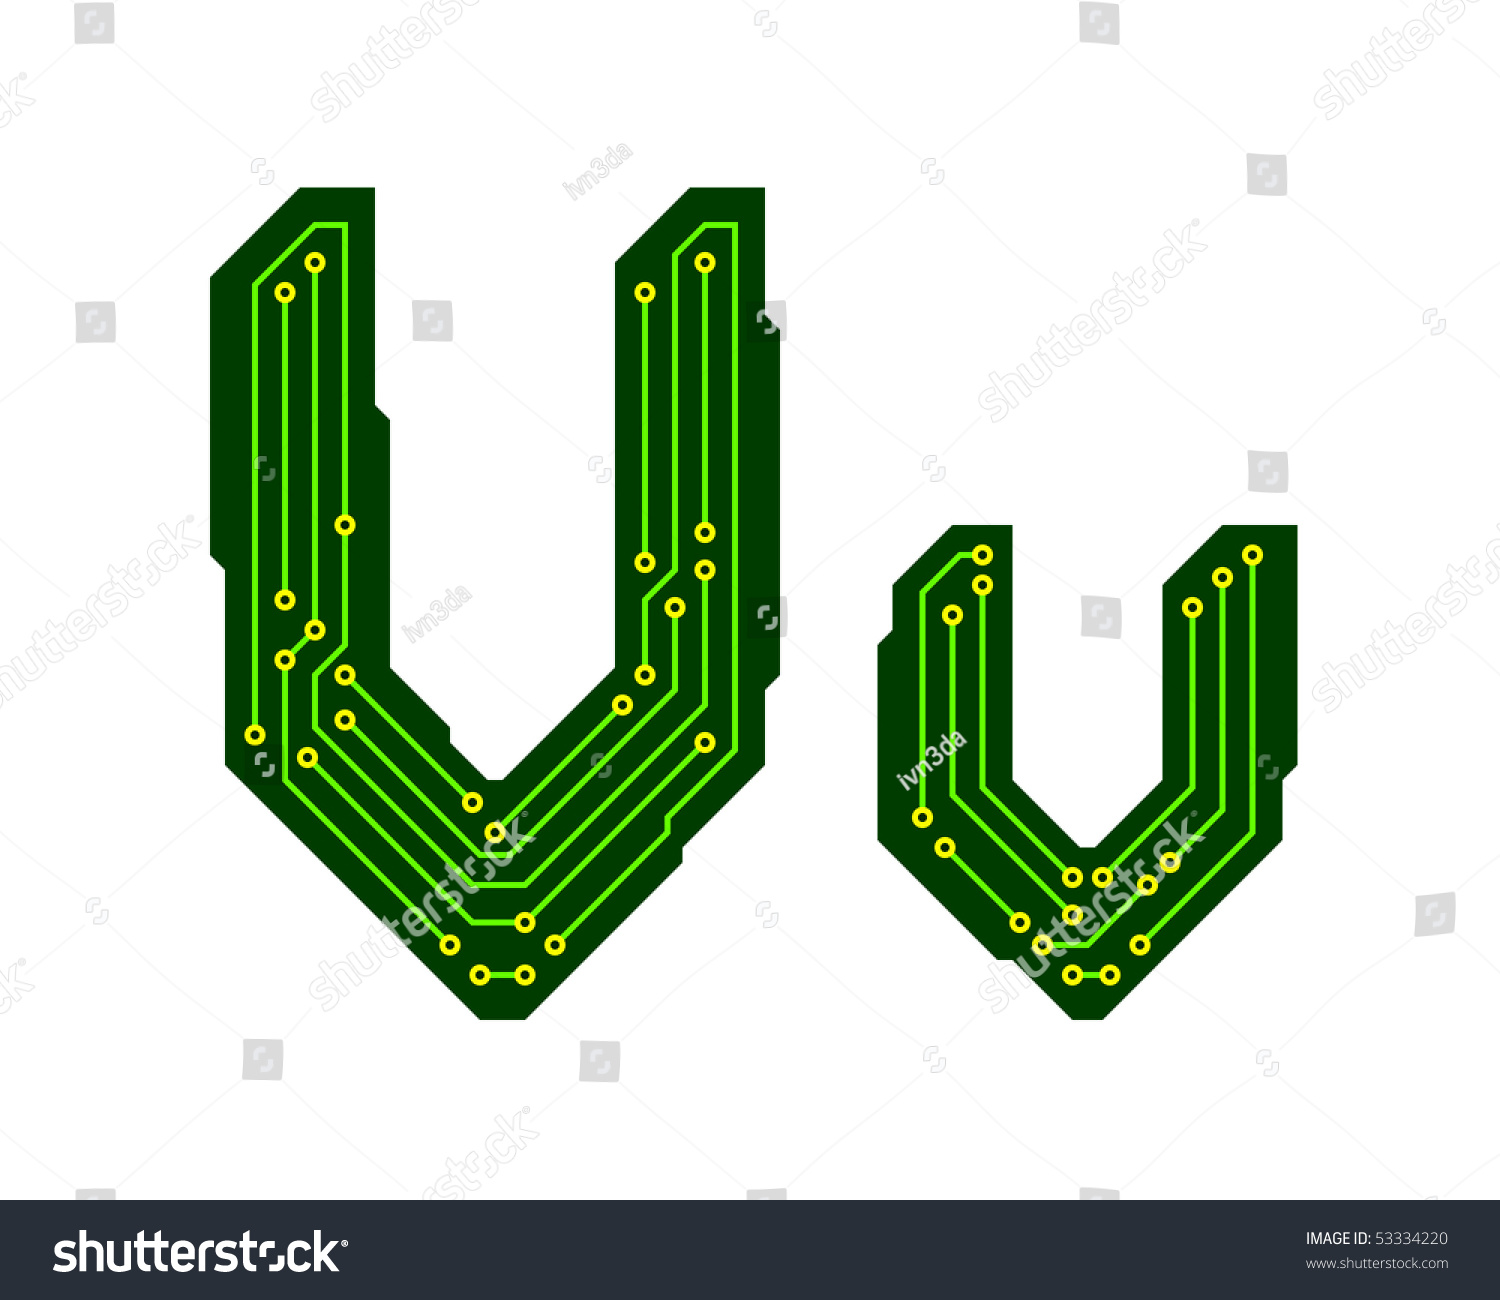 Alphabet Of Printed Circuit Boards Easy To Edit Capital Letter E